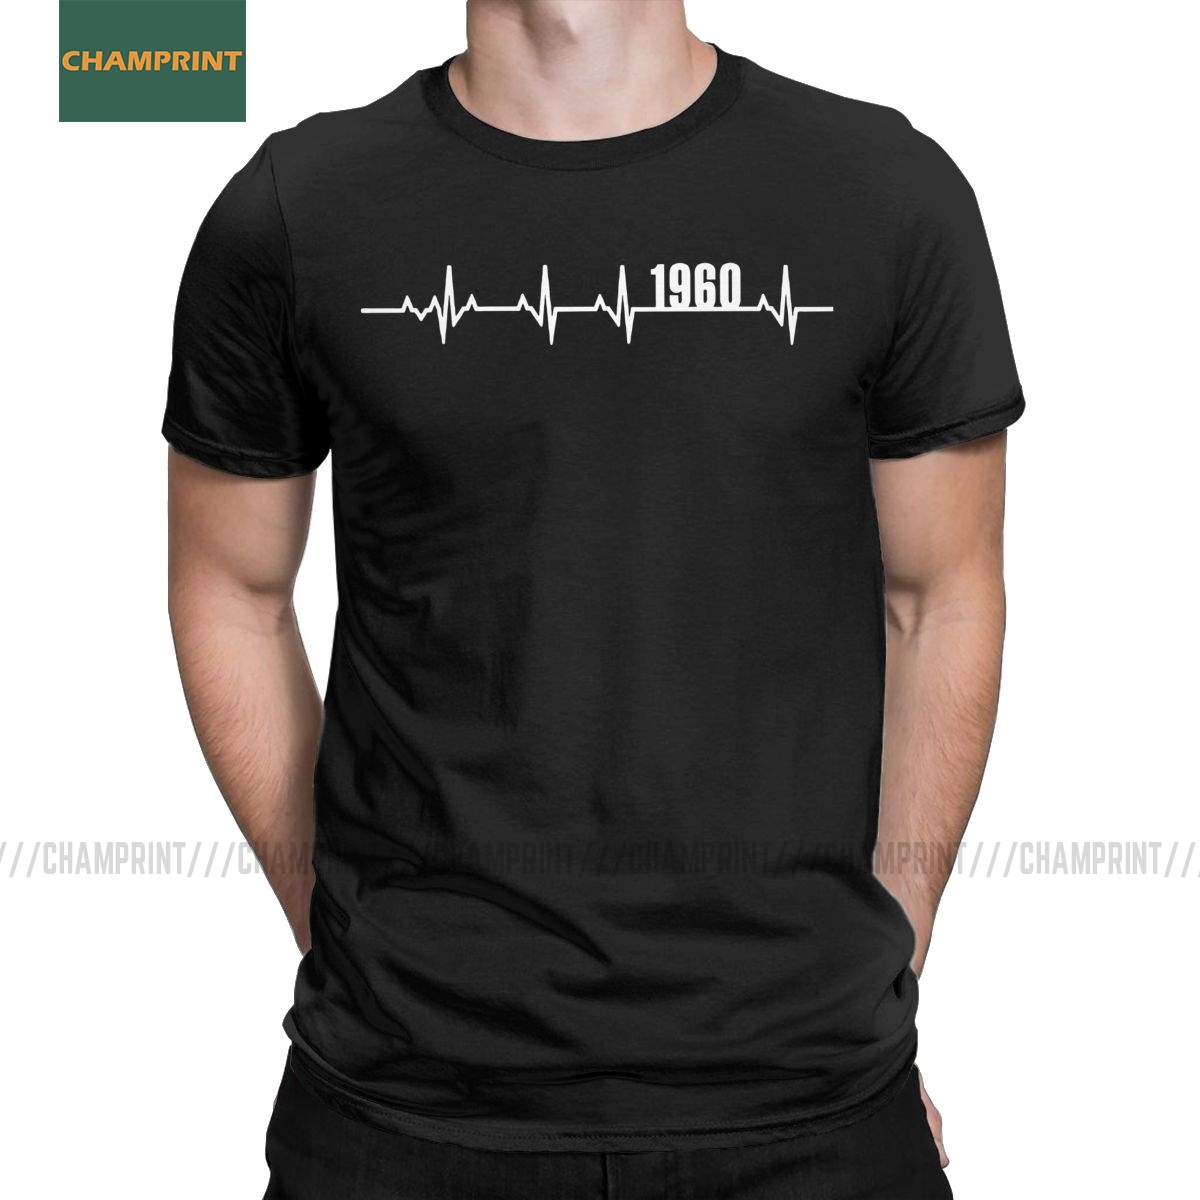 Men T-Shirts 1960 Heartbeat Birthday Gifts Funny Pure Cotton Tee Shirt Short Sleeve 60 Years Old 60th Birthday Gift T Shirt